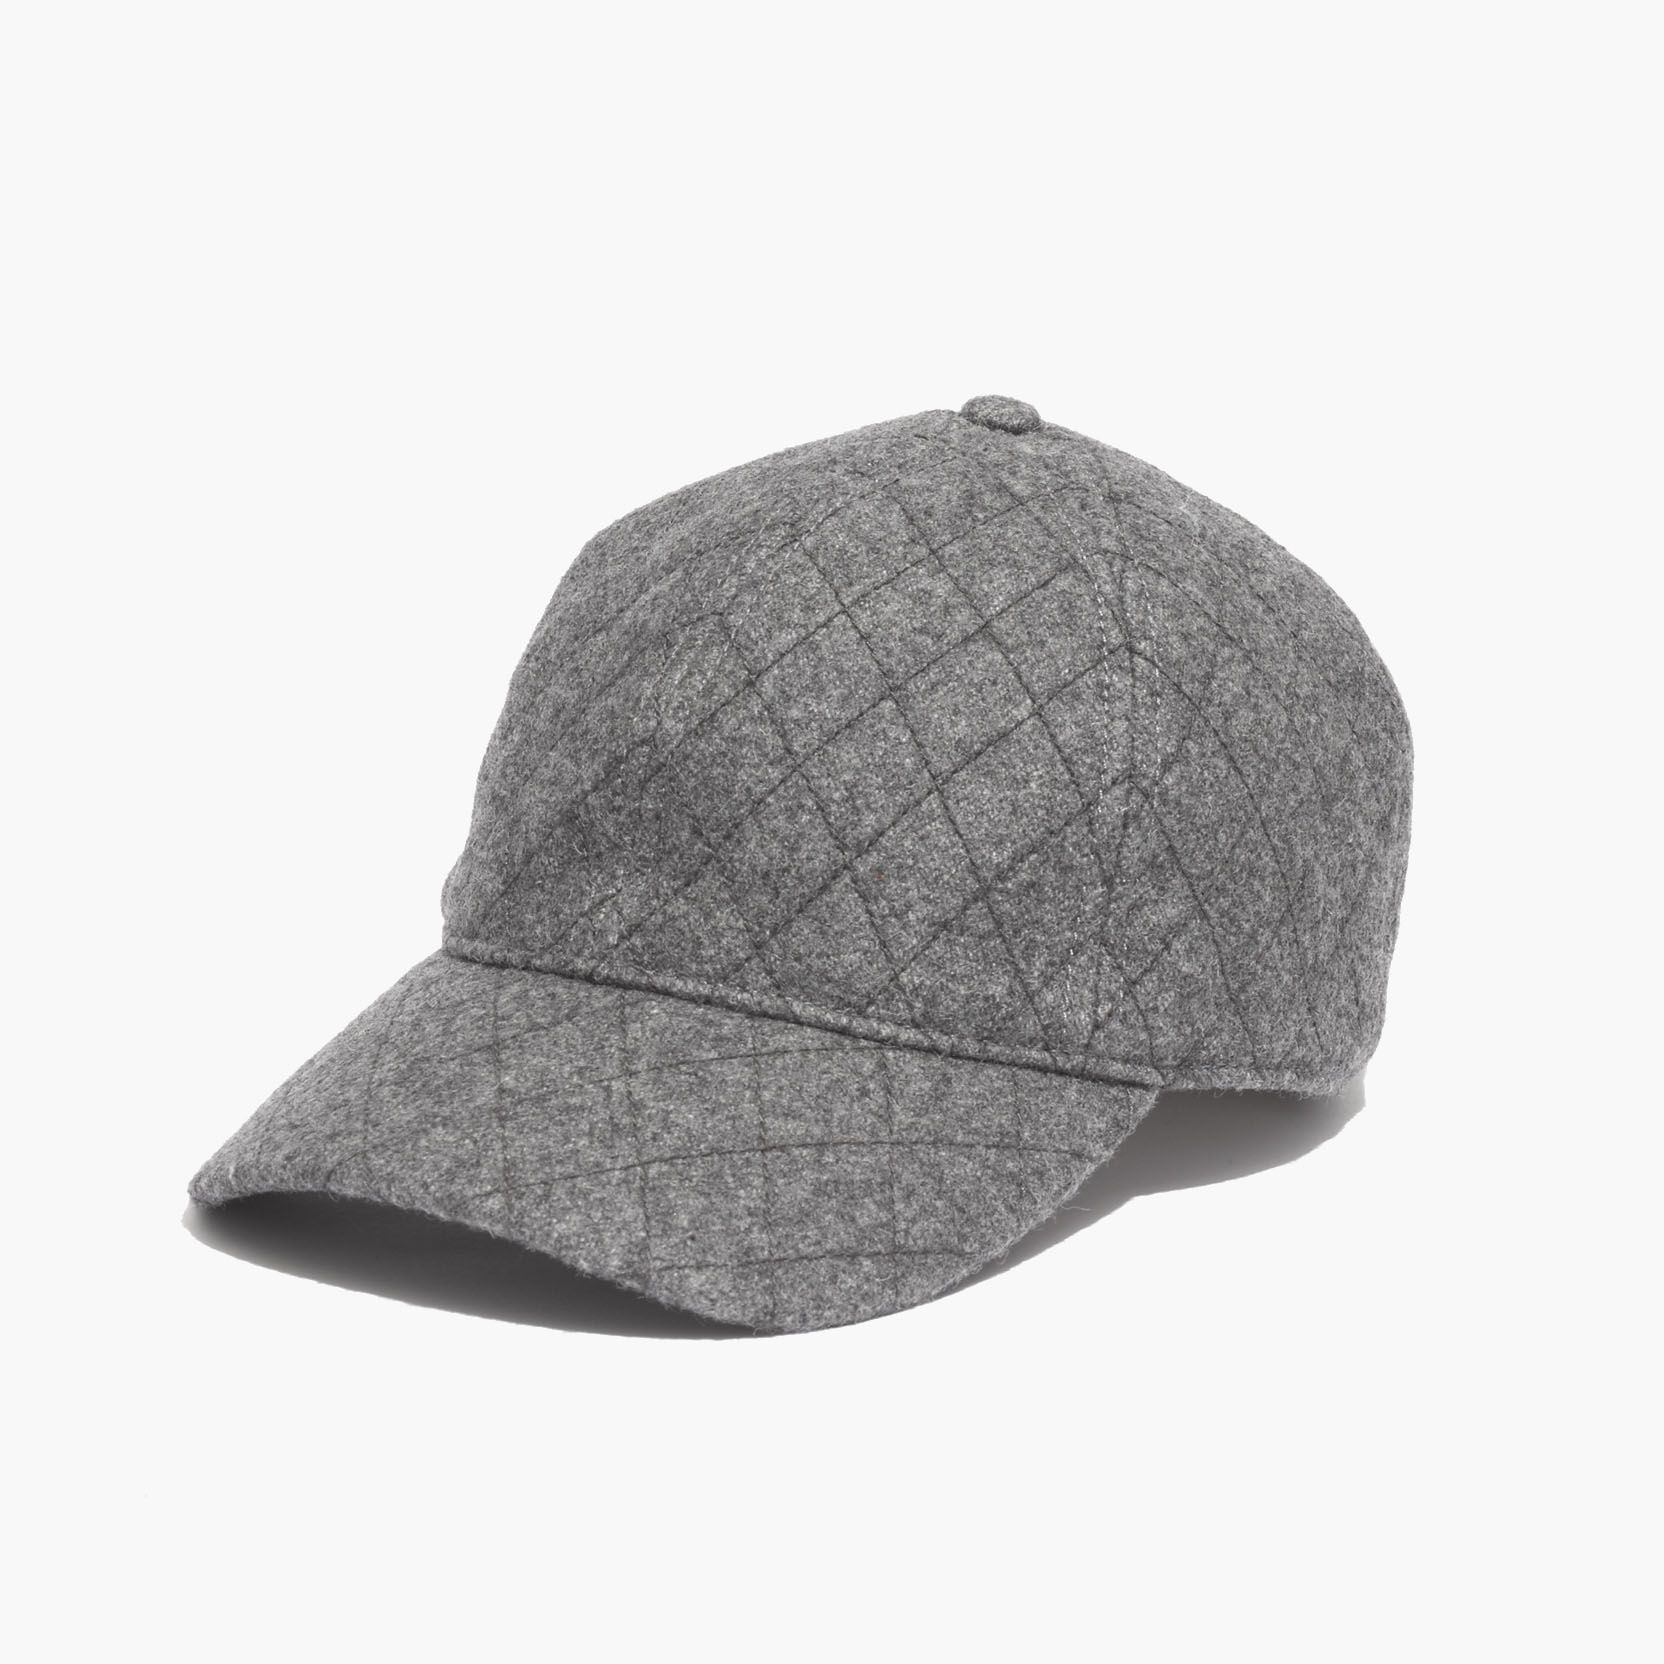 079bd2baf57 madewell quilted baseball cap in grey.